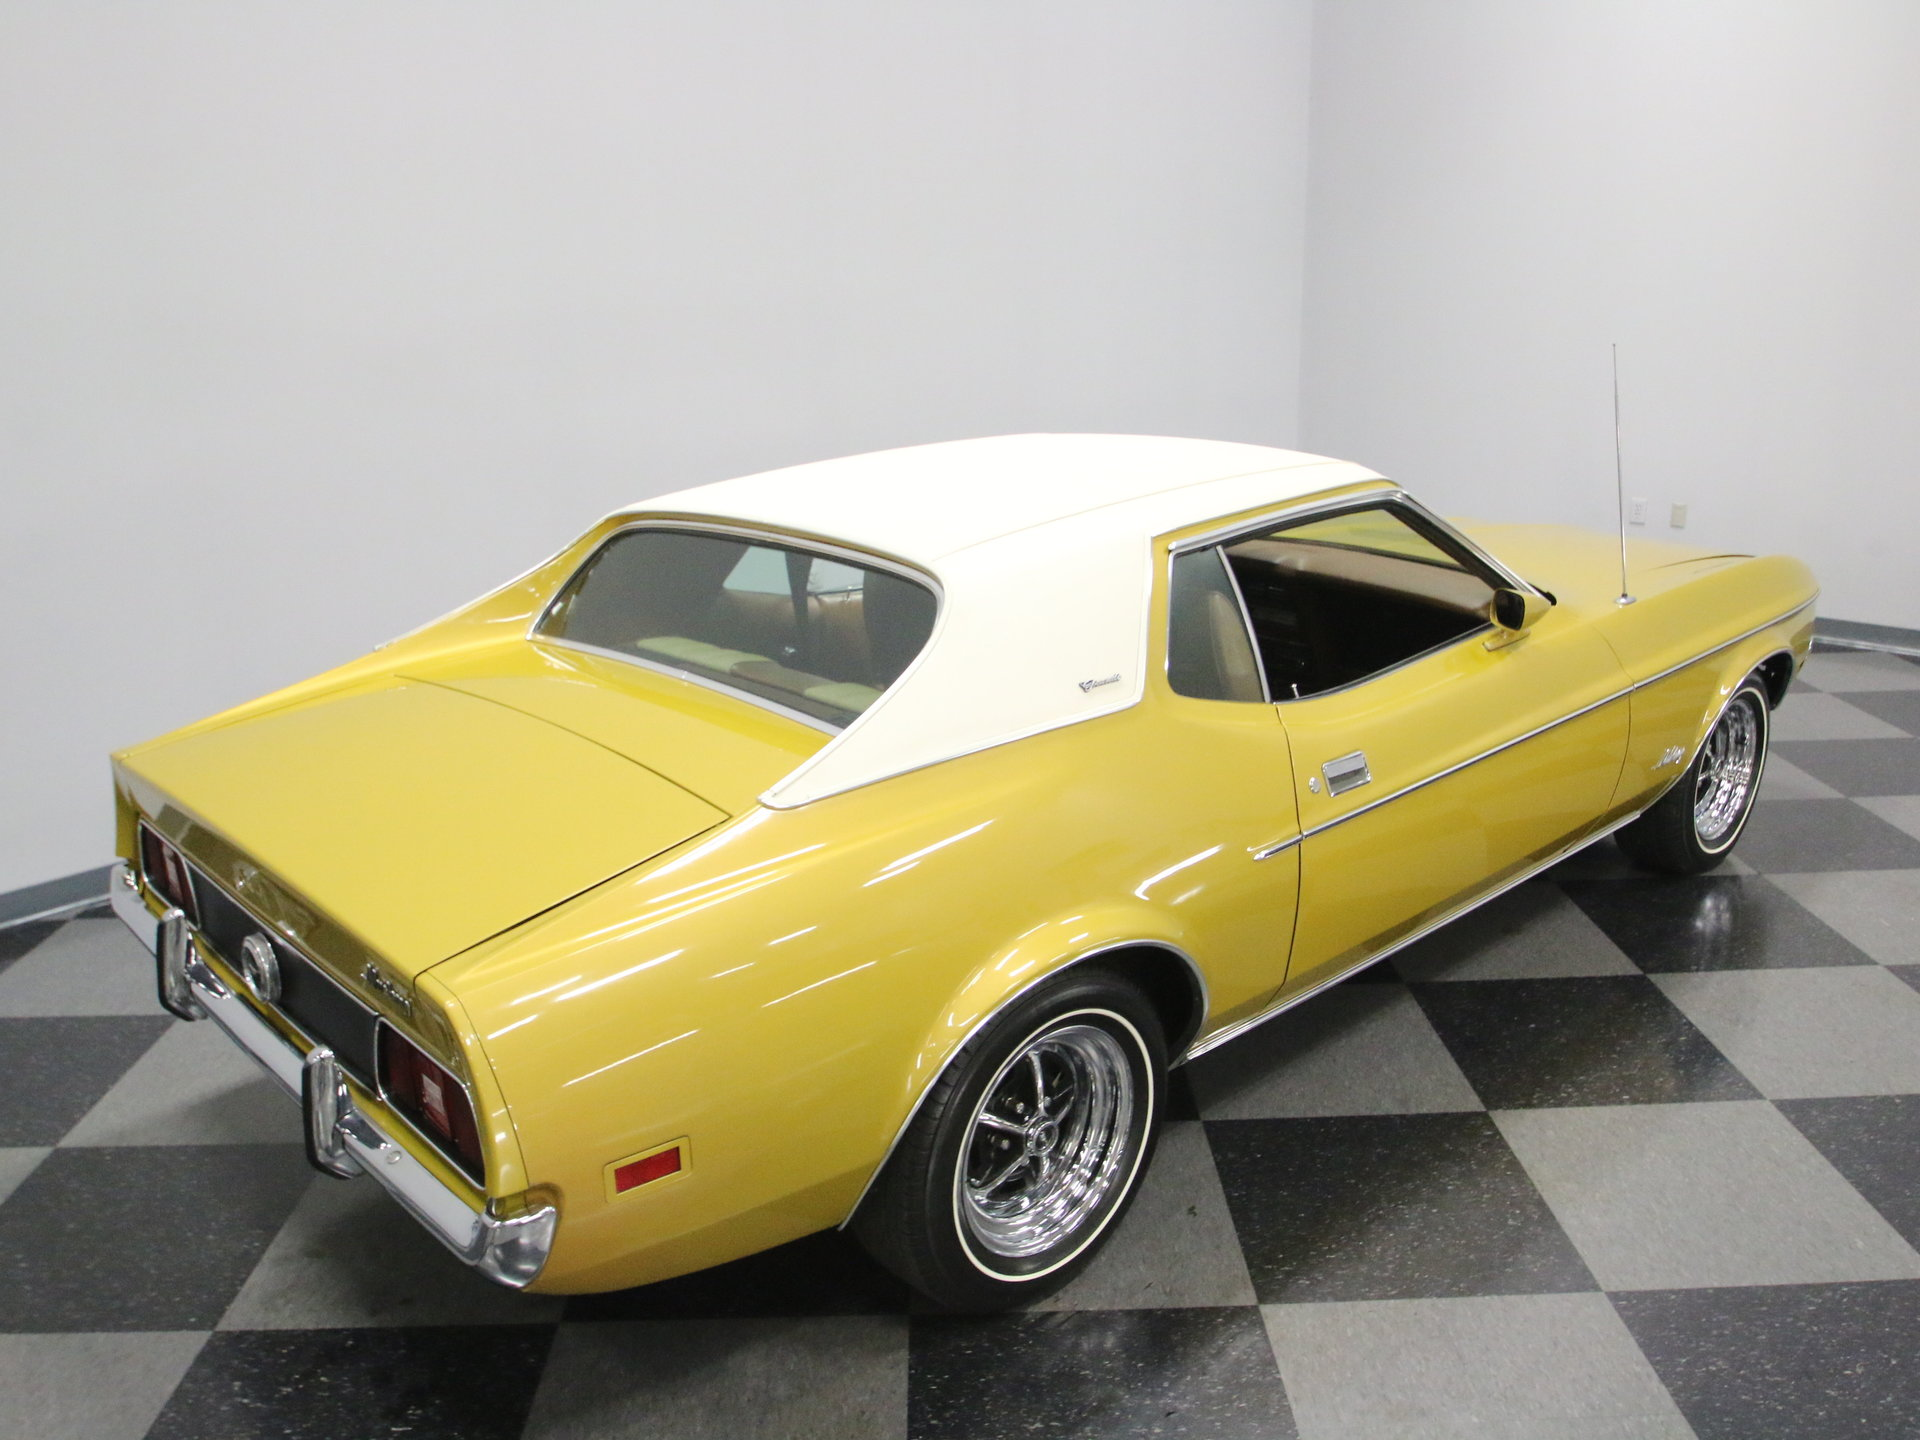 1972 Ford Mustang Streetside Classics The Nations Trusted 2002 Mach Sound System View 360